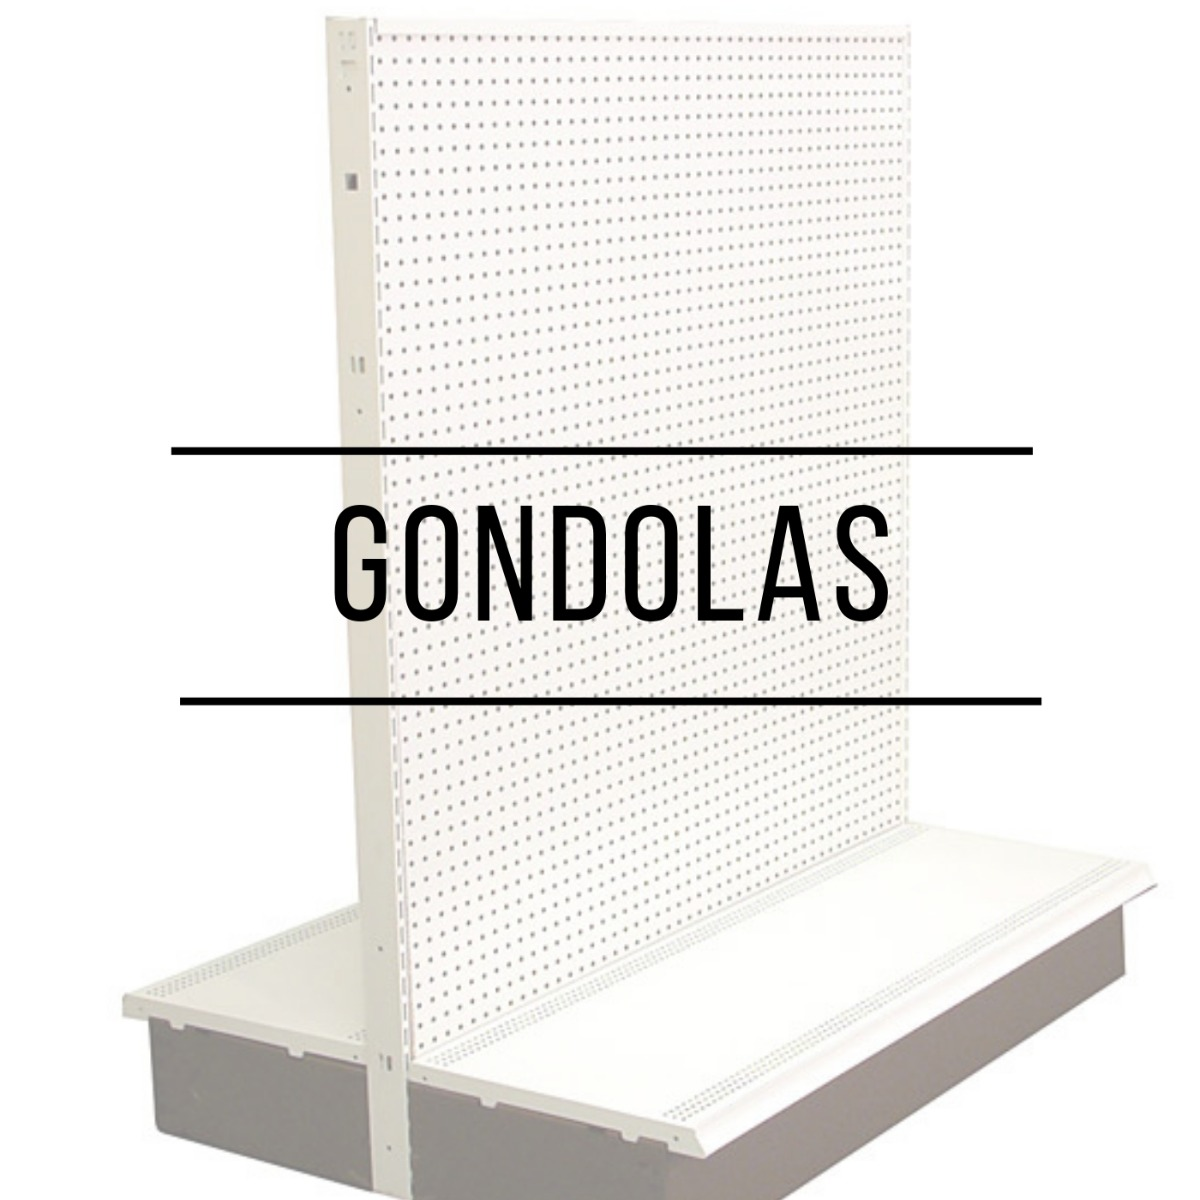 Display items in Hawaii with Gondola Shelving or peg board accessories.